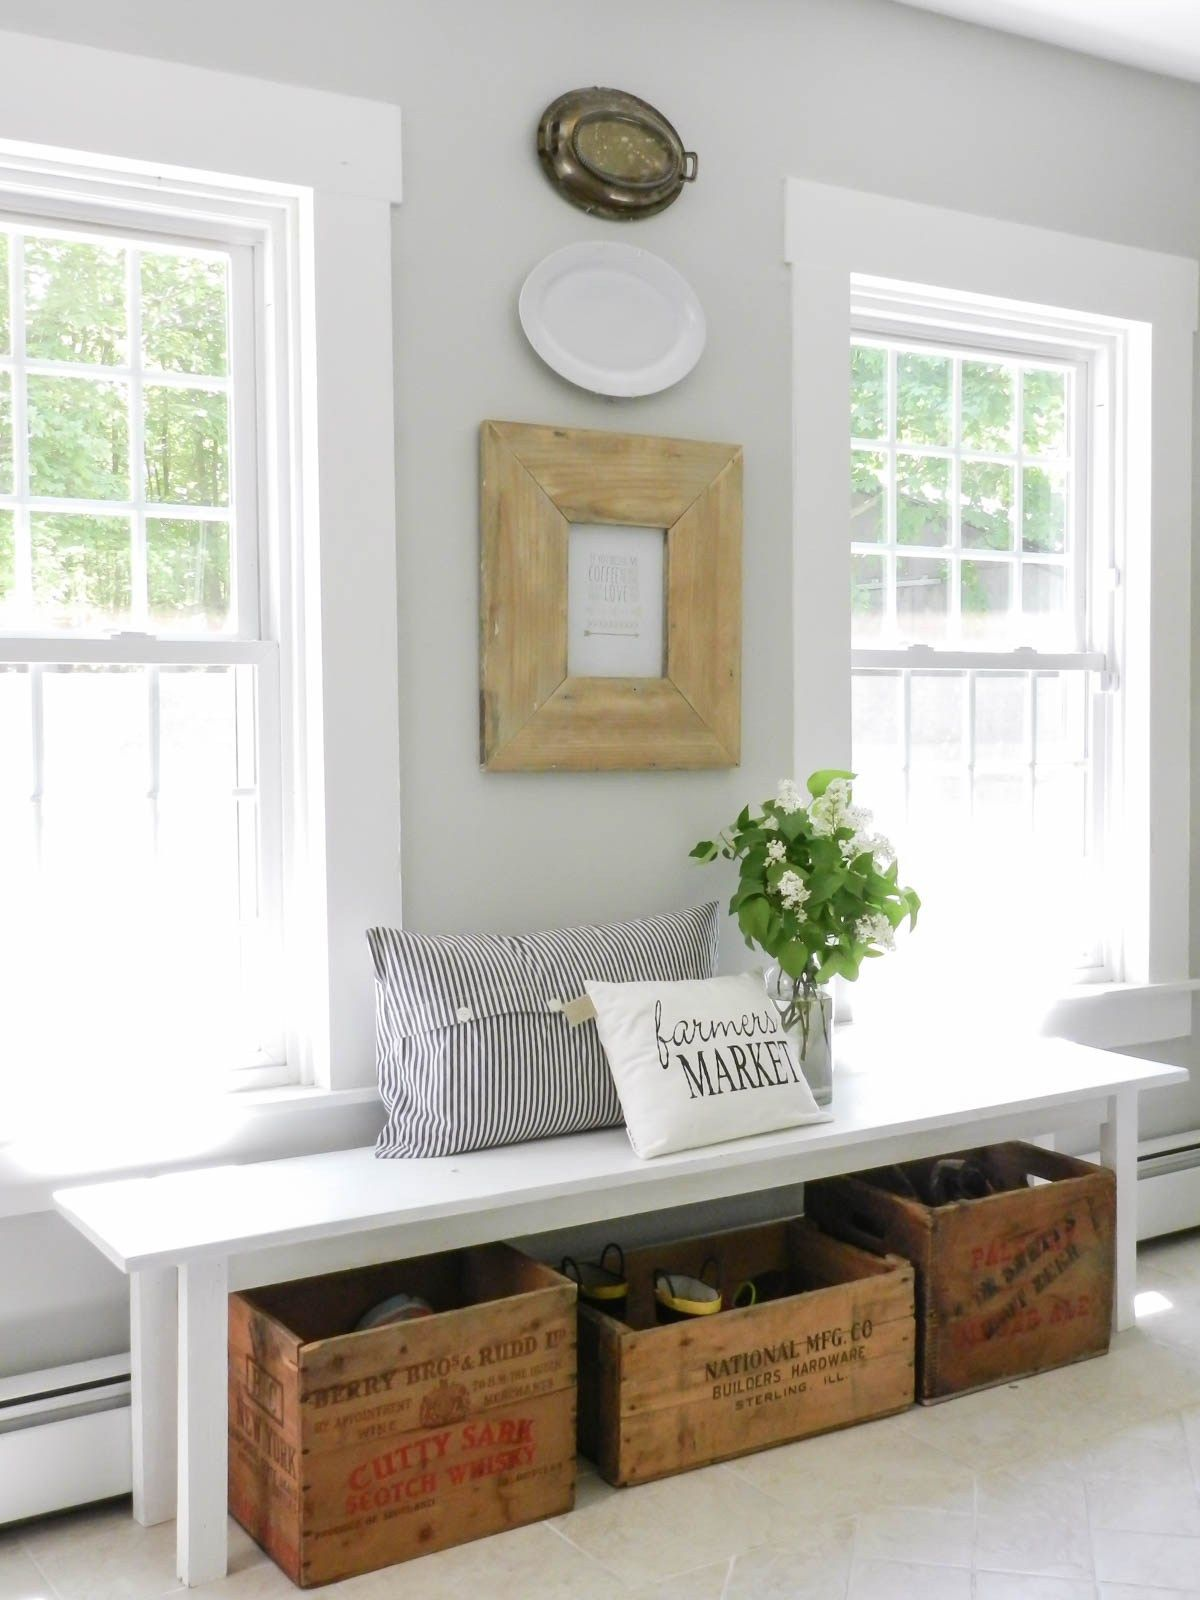 How To Decorate An Entryway With Images Decor Home Decor